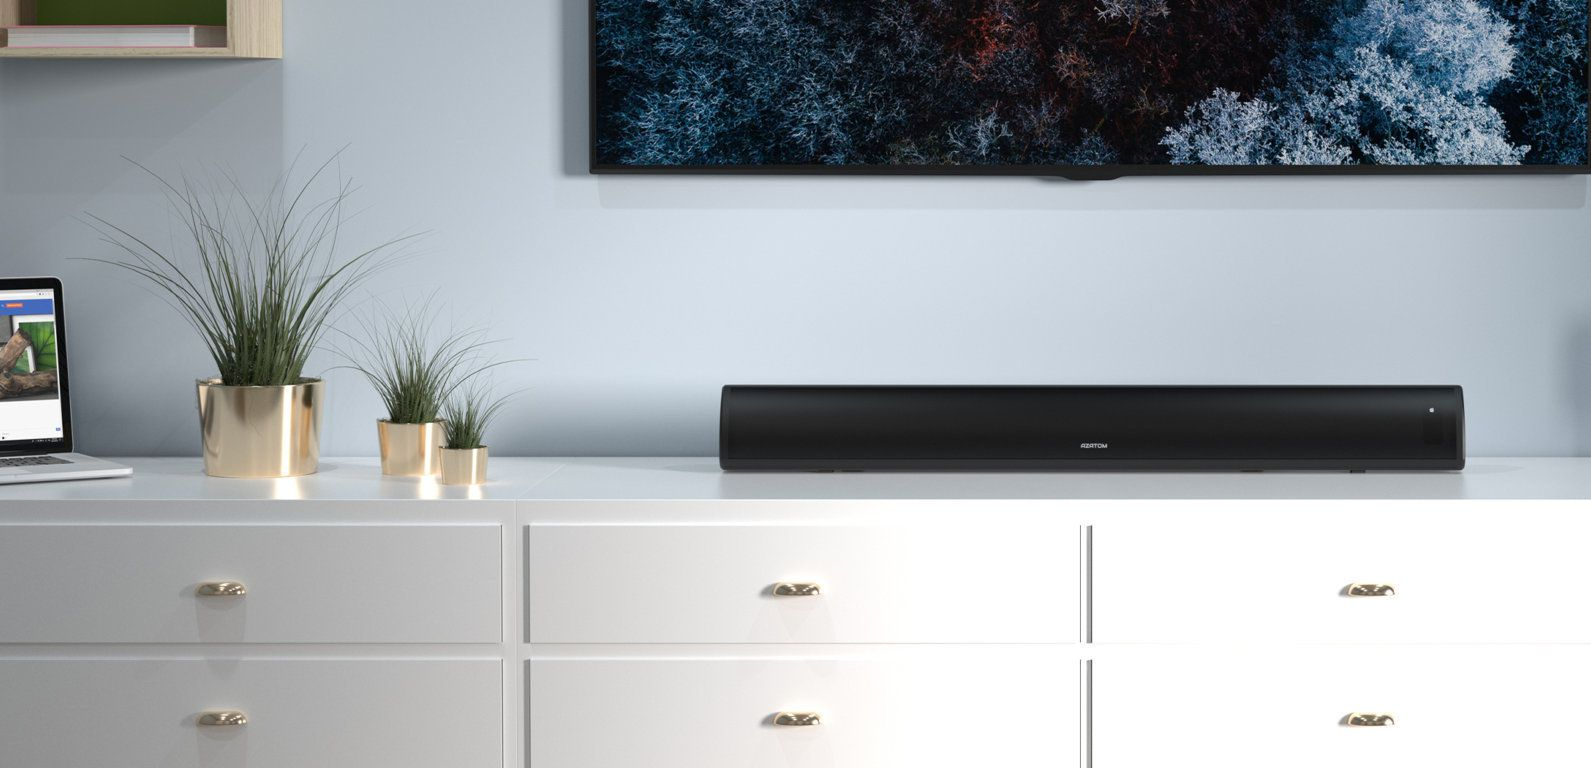 Studio UHD2 Soundbar